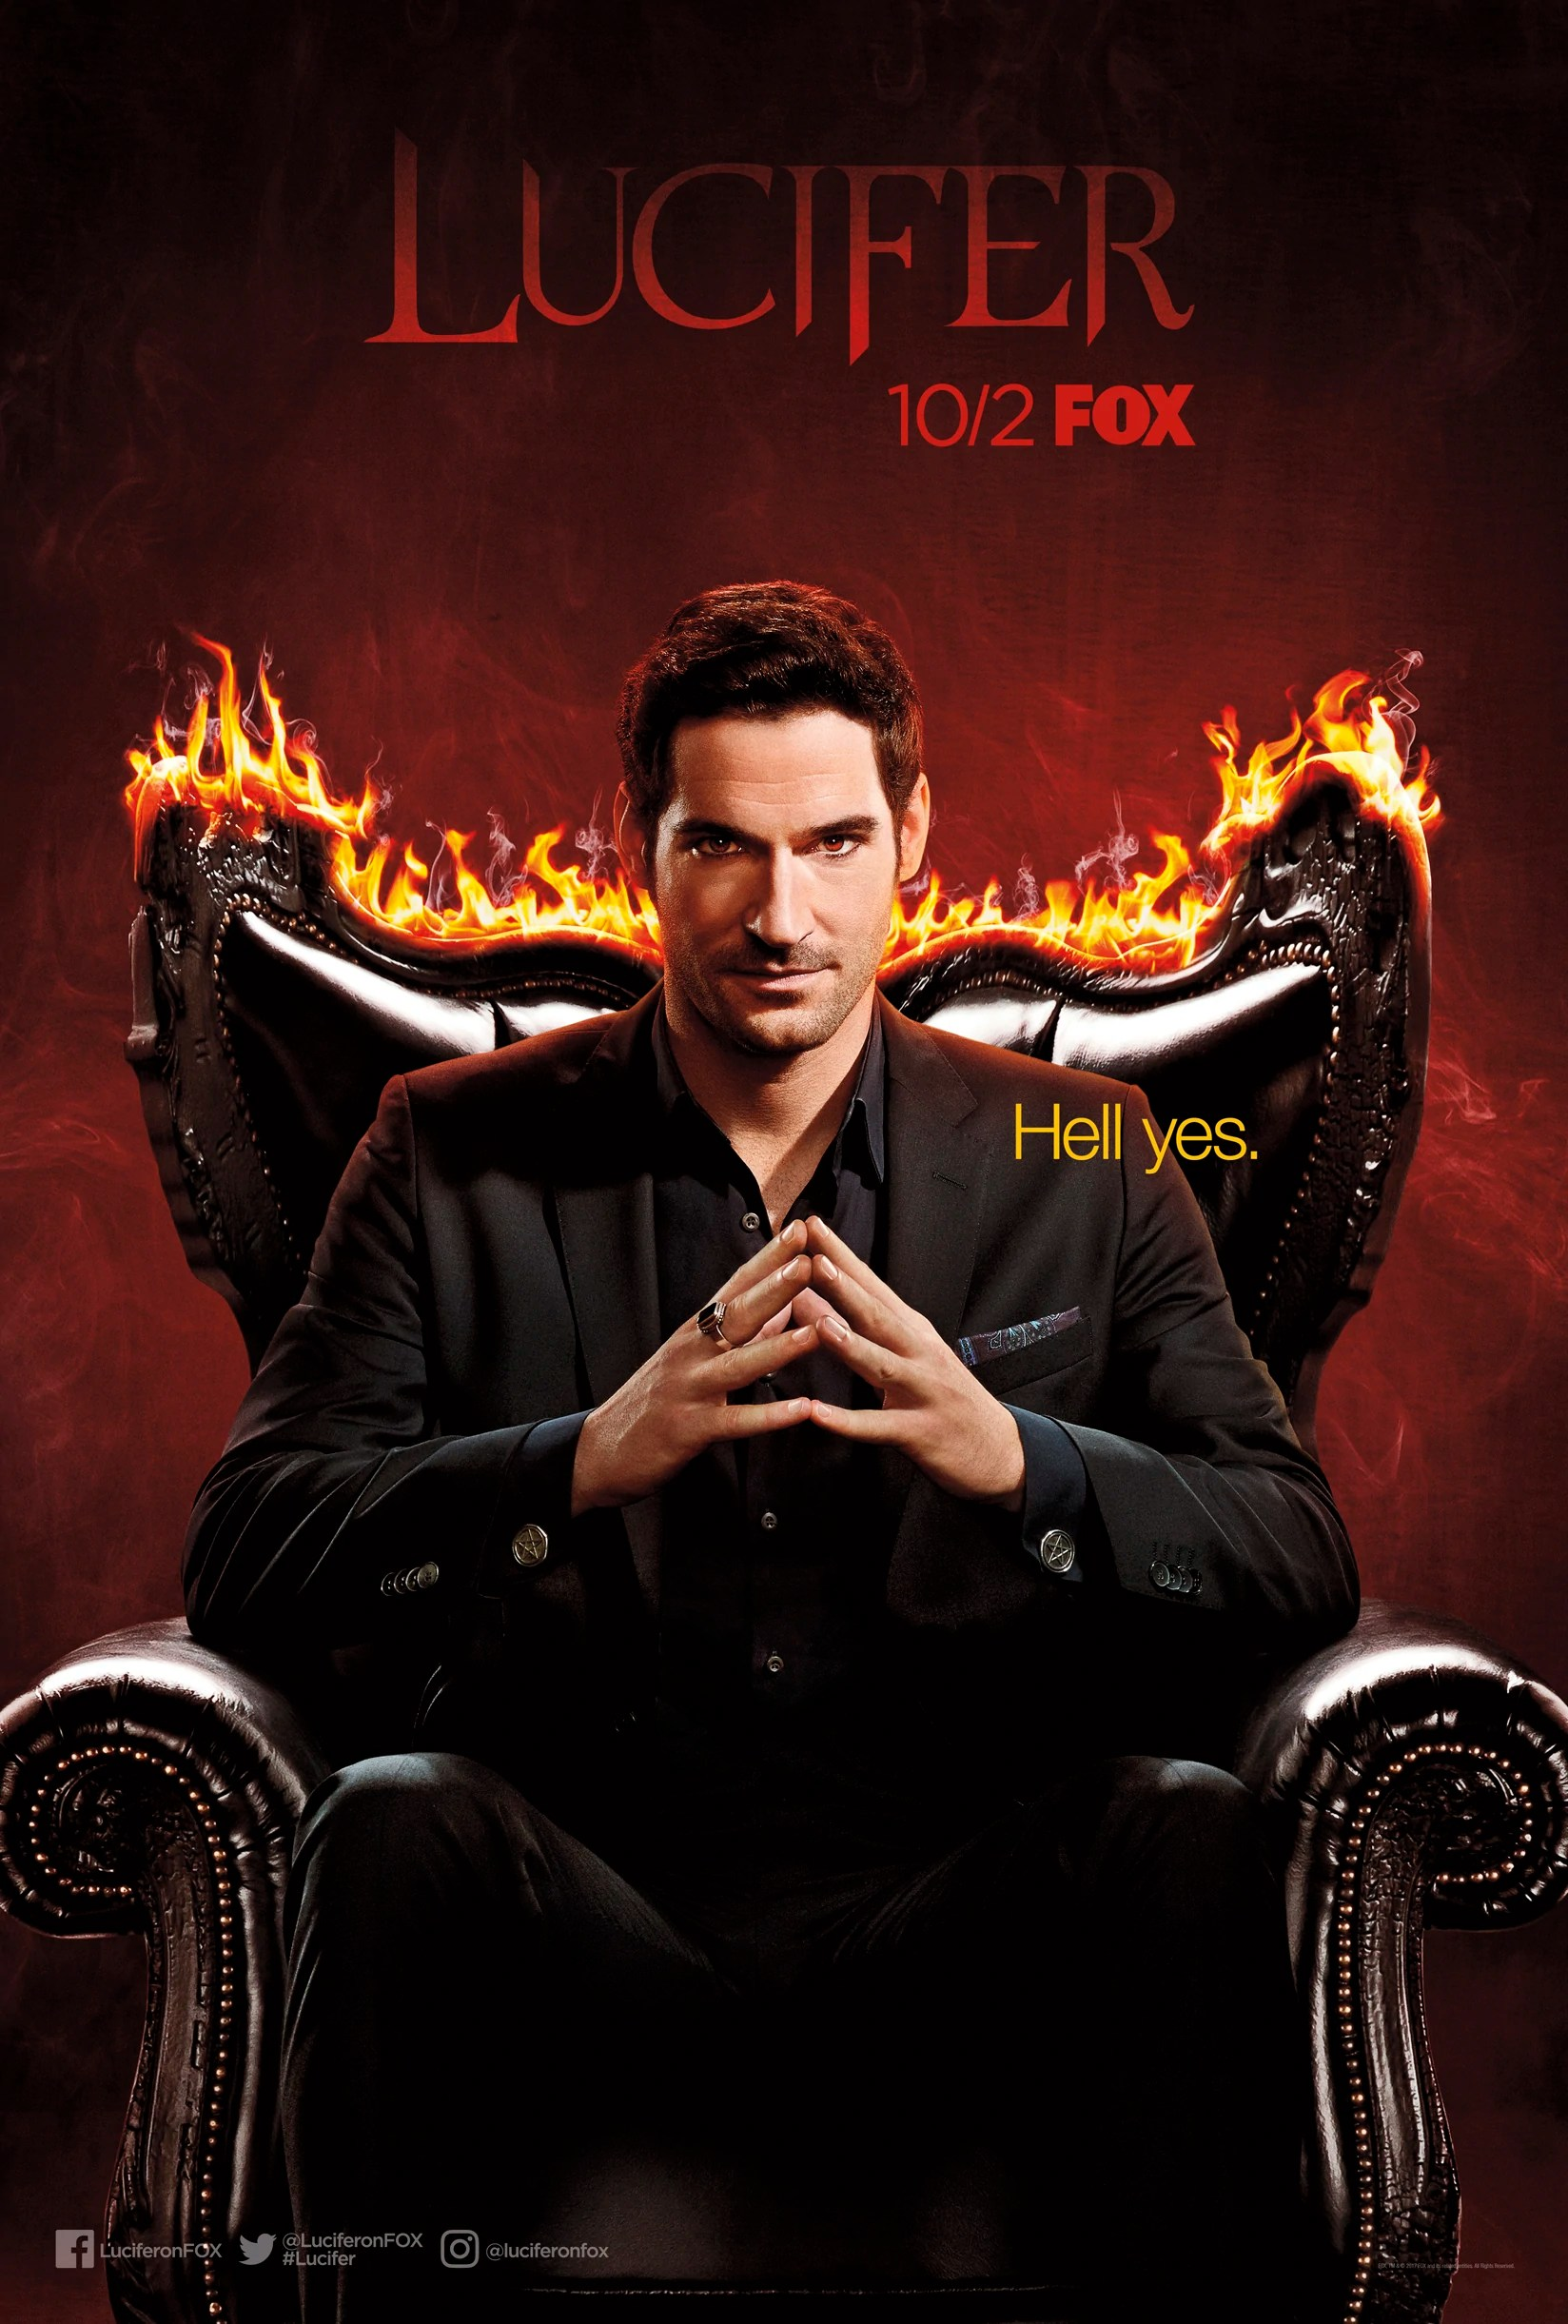 Lucifer Season 3 Episode 25 : lucifer, season, episode, Season, Lucifer, Fandom